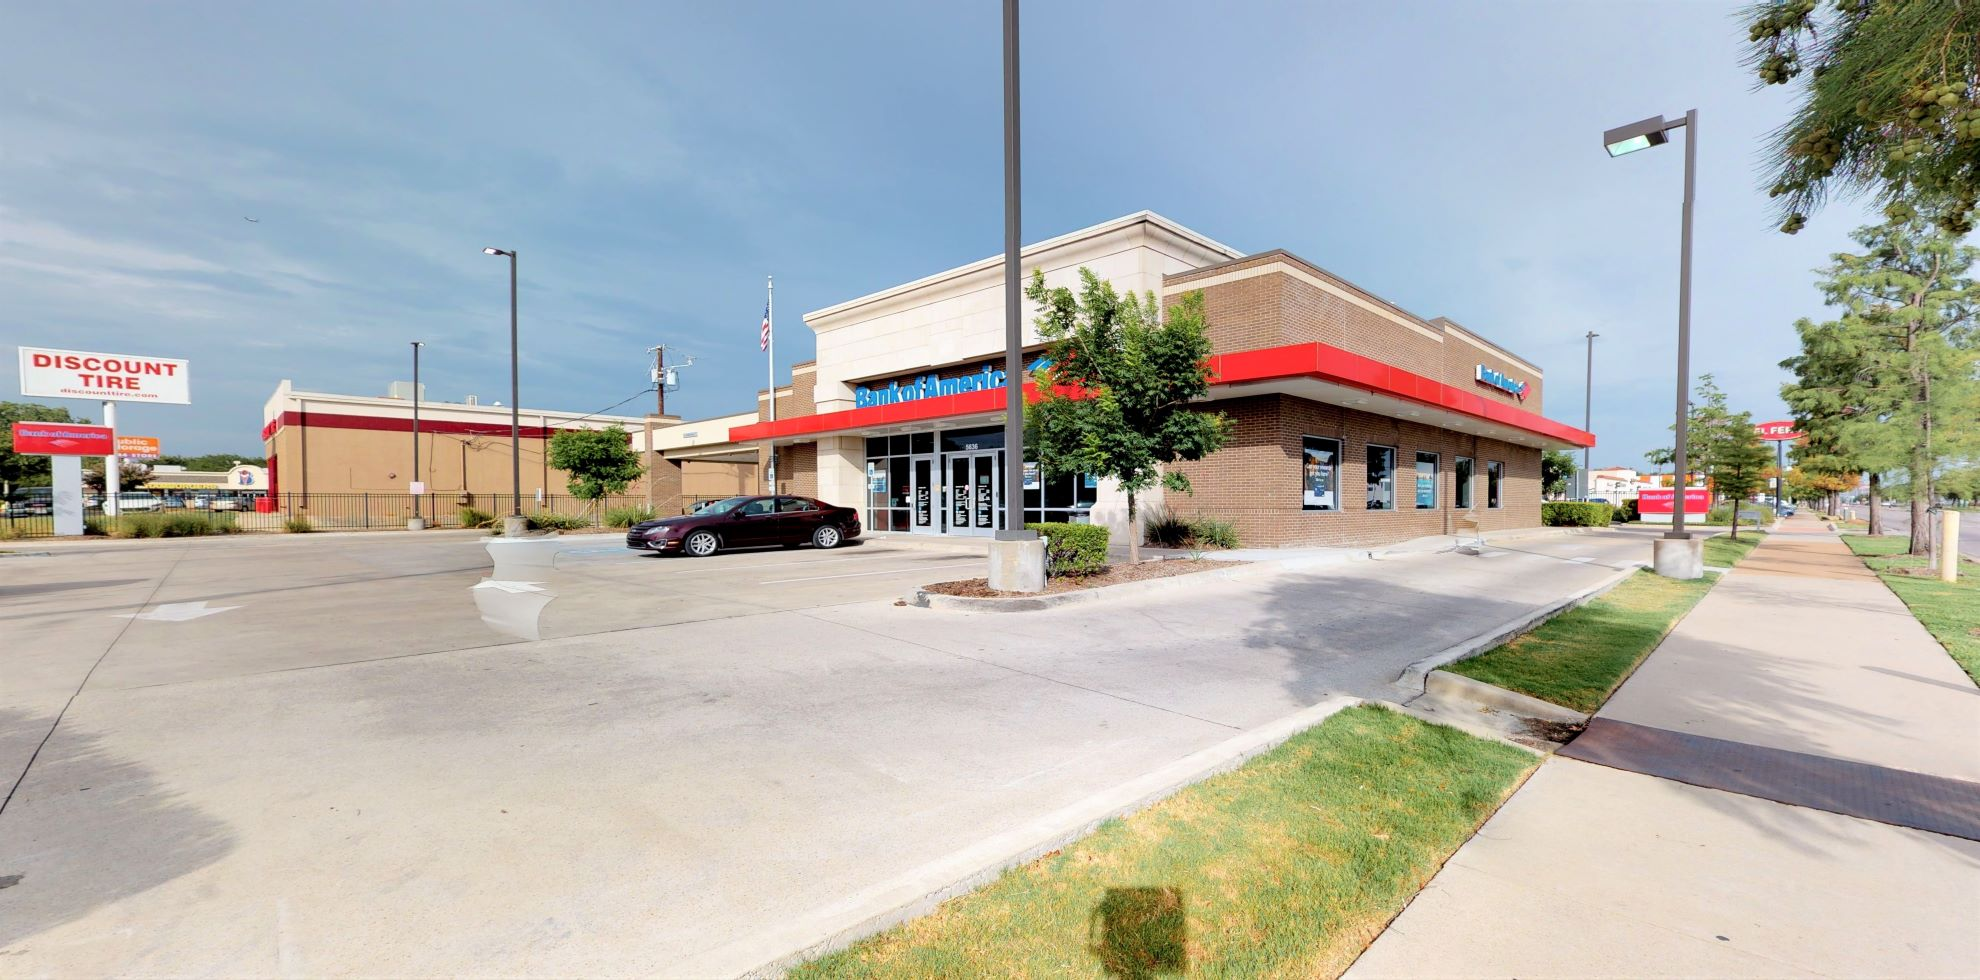 Bank of America financial center with drive-thru ATM | 5636 Lemmon Ave, Dallas, TX 75209